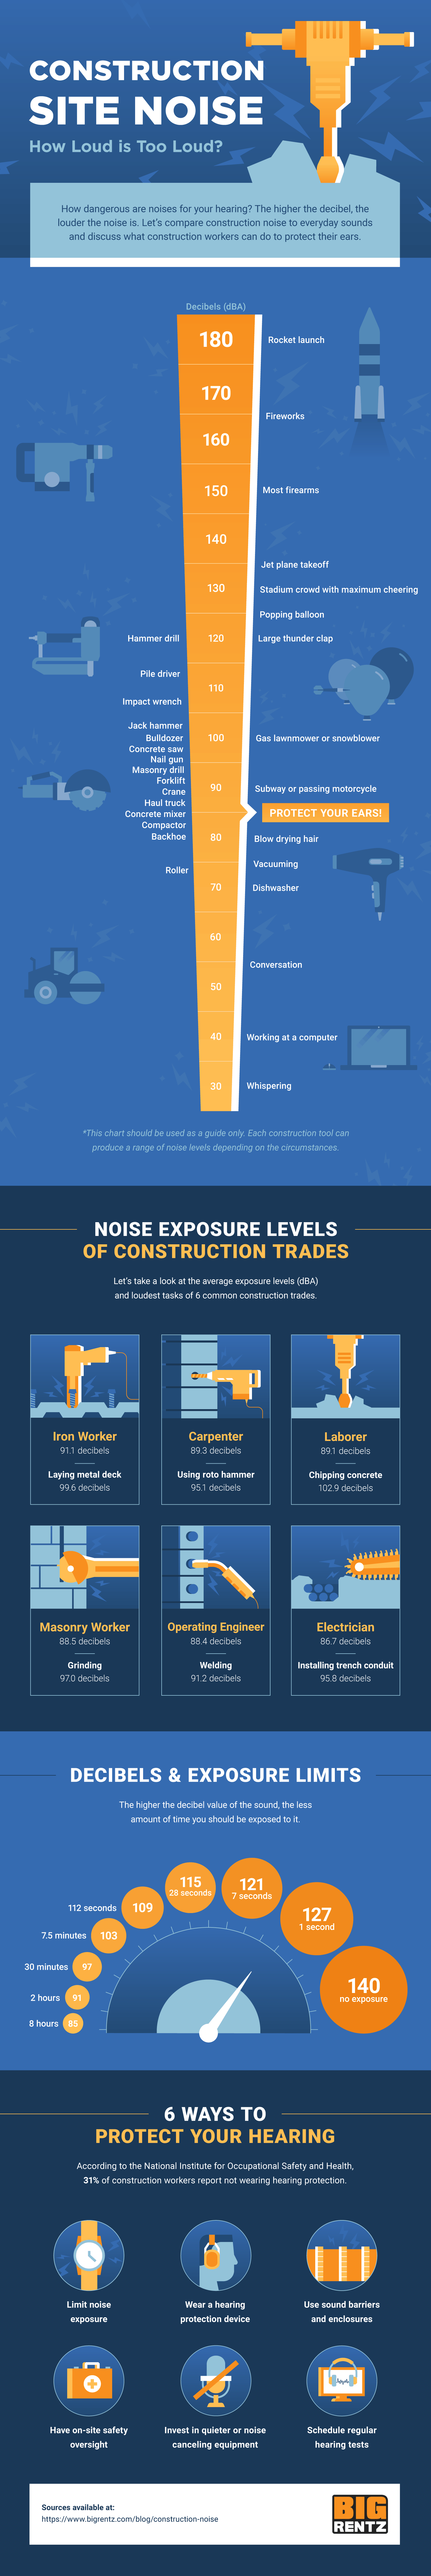 Massive graphic for construction Site noise depicting the decibels (db or dba) for different drilling tasks